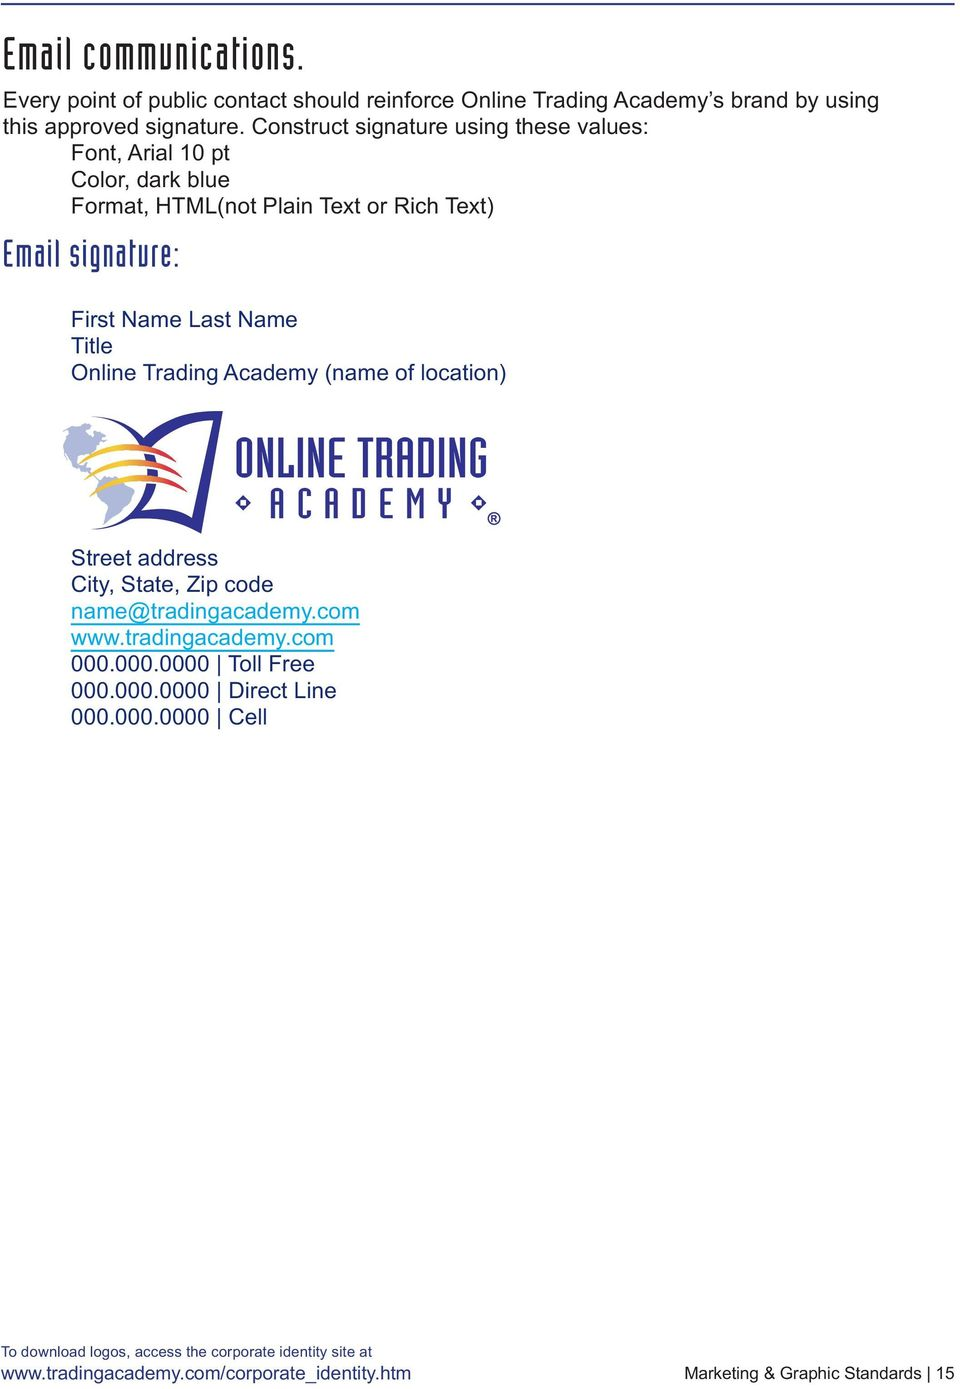 Name Last Name Title Online Trading Academy (name of location) Street address City, State, Zip code name@tradingacademy.com www.